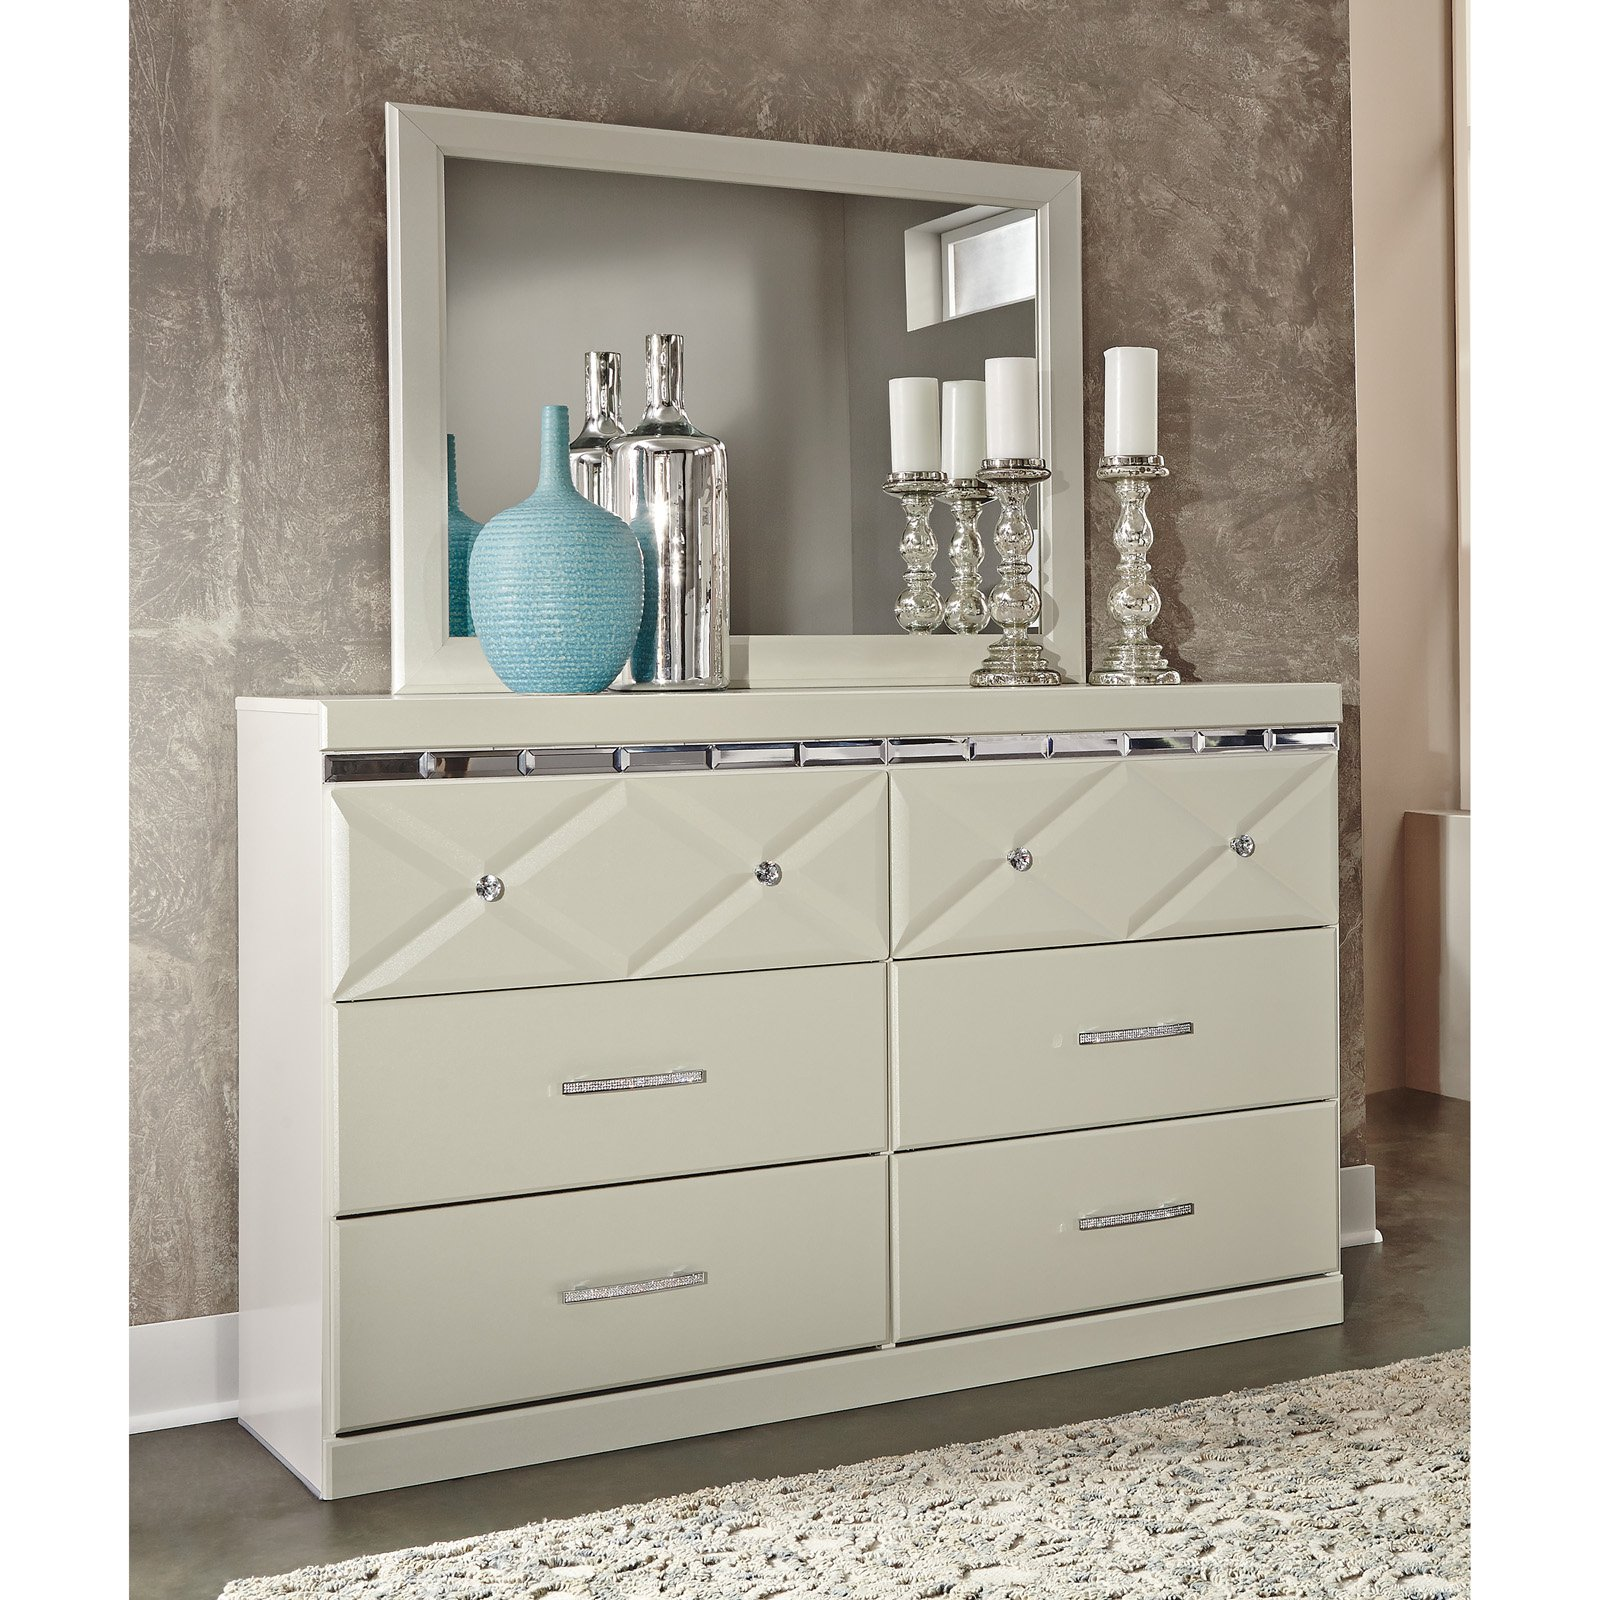 Signature Design by Ashley Dreamur 6 Drawer Dresser with Optional Mirror